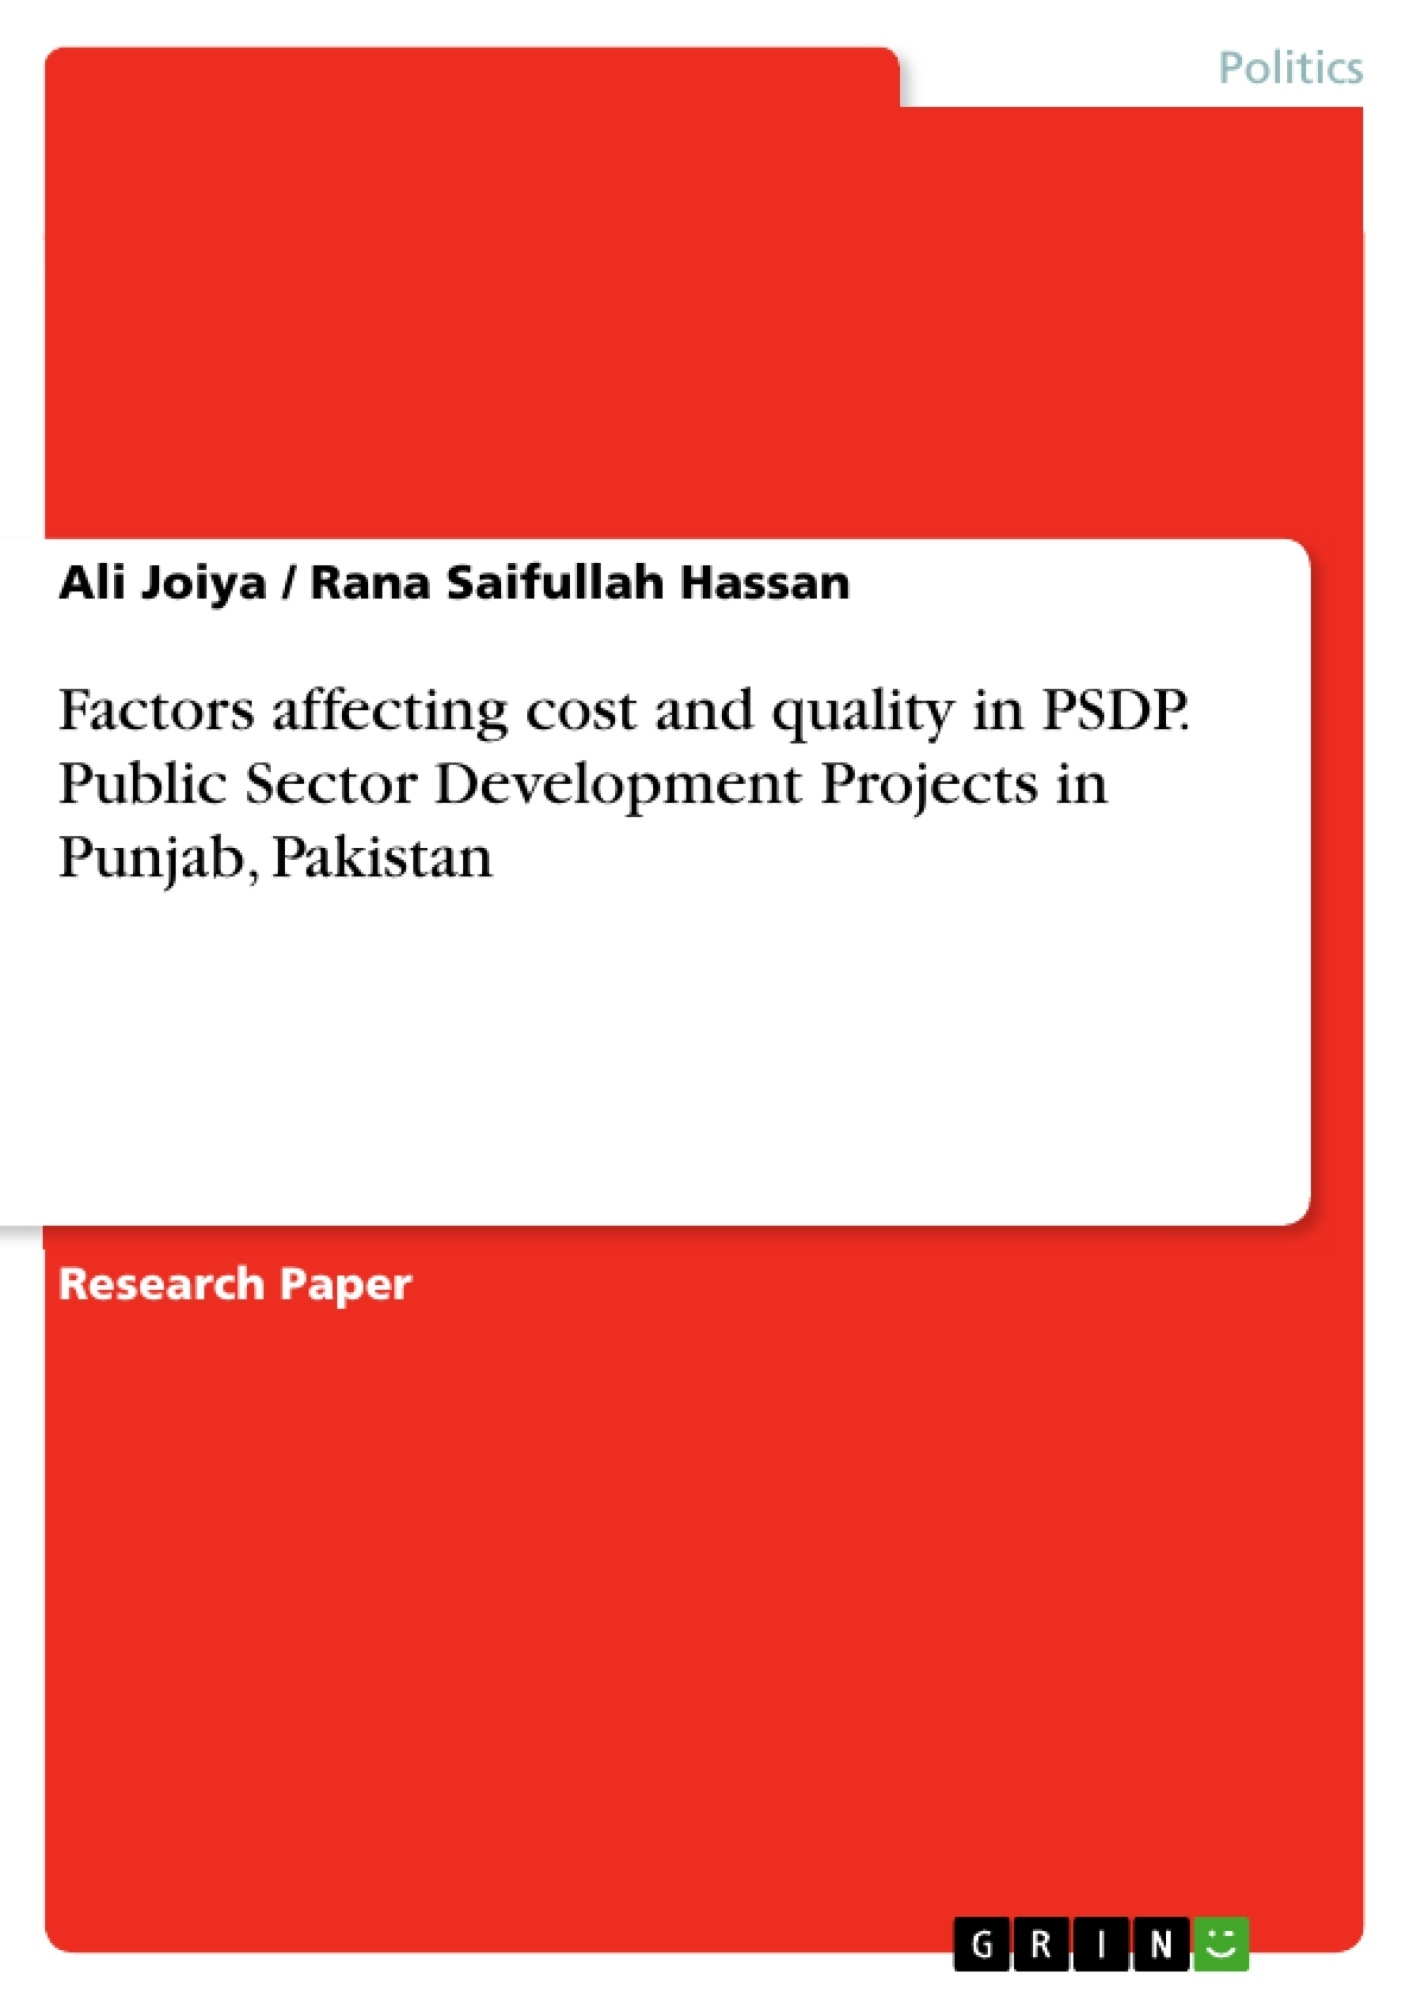 Title: Factors affecting cost and quality in PSDP. Public Sector Development Projects in Punjab, Pakistan